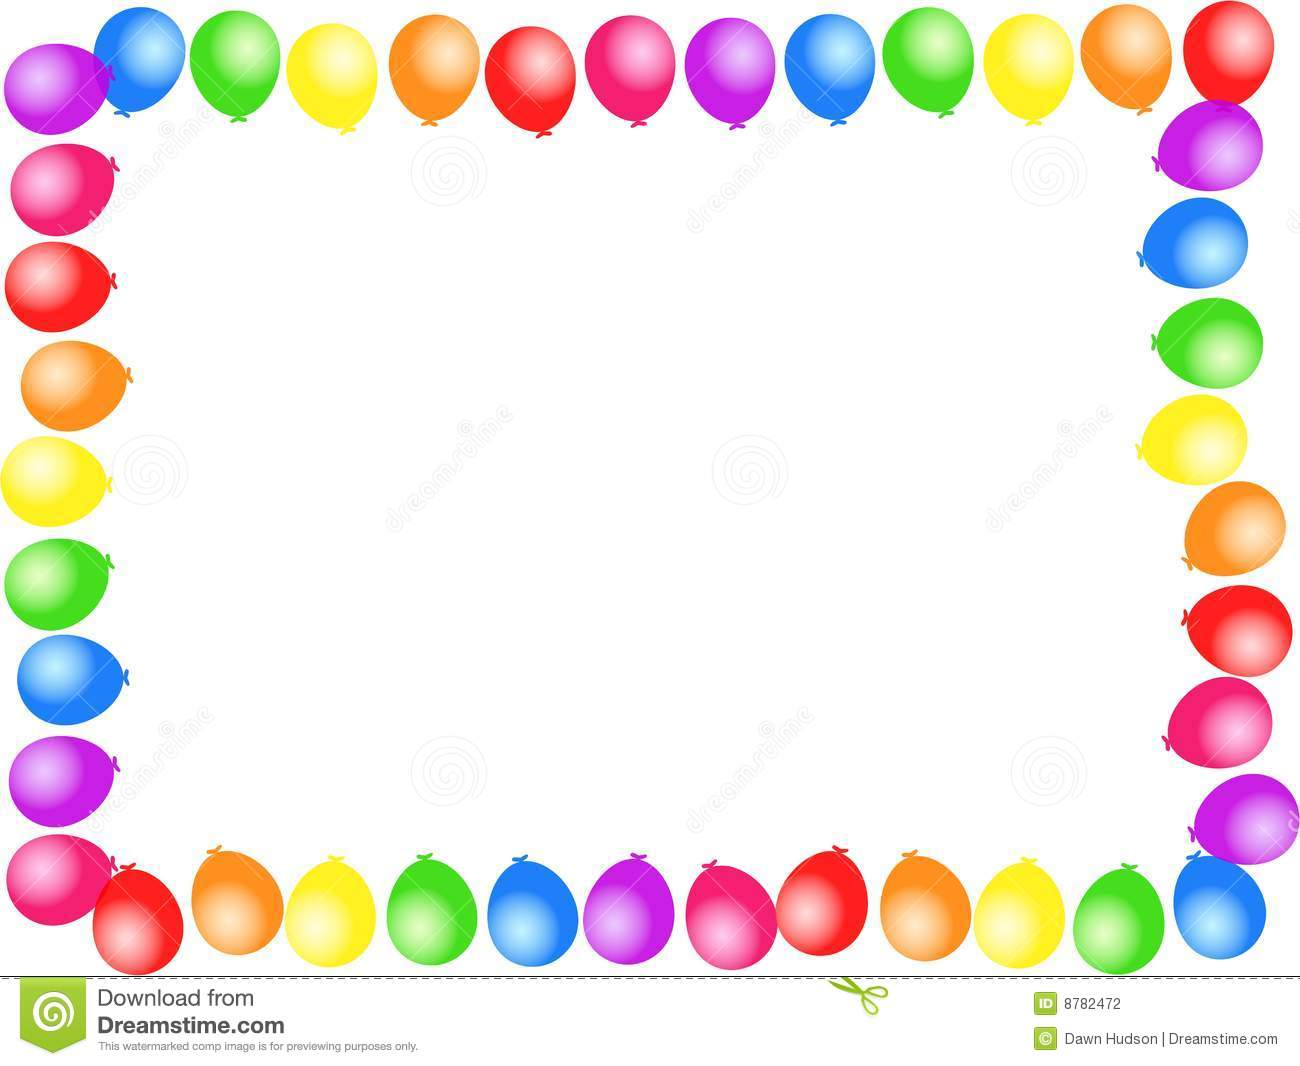 Balloon Border Images - Reverse Search